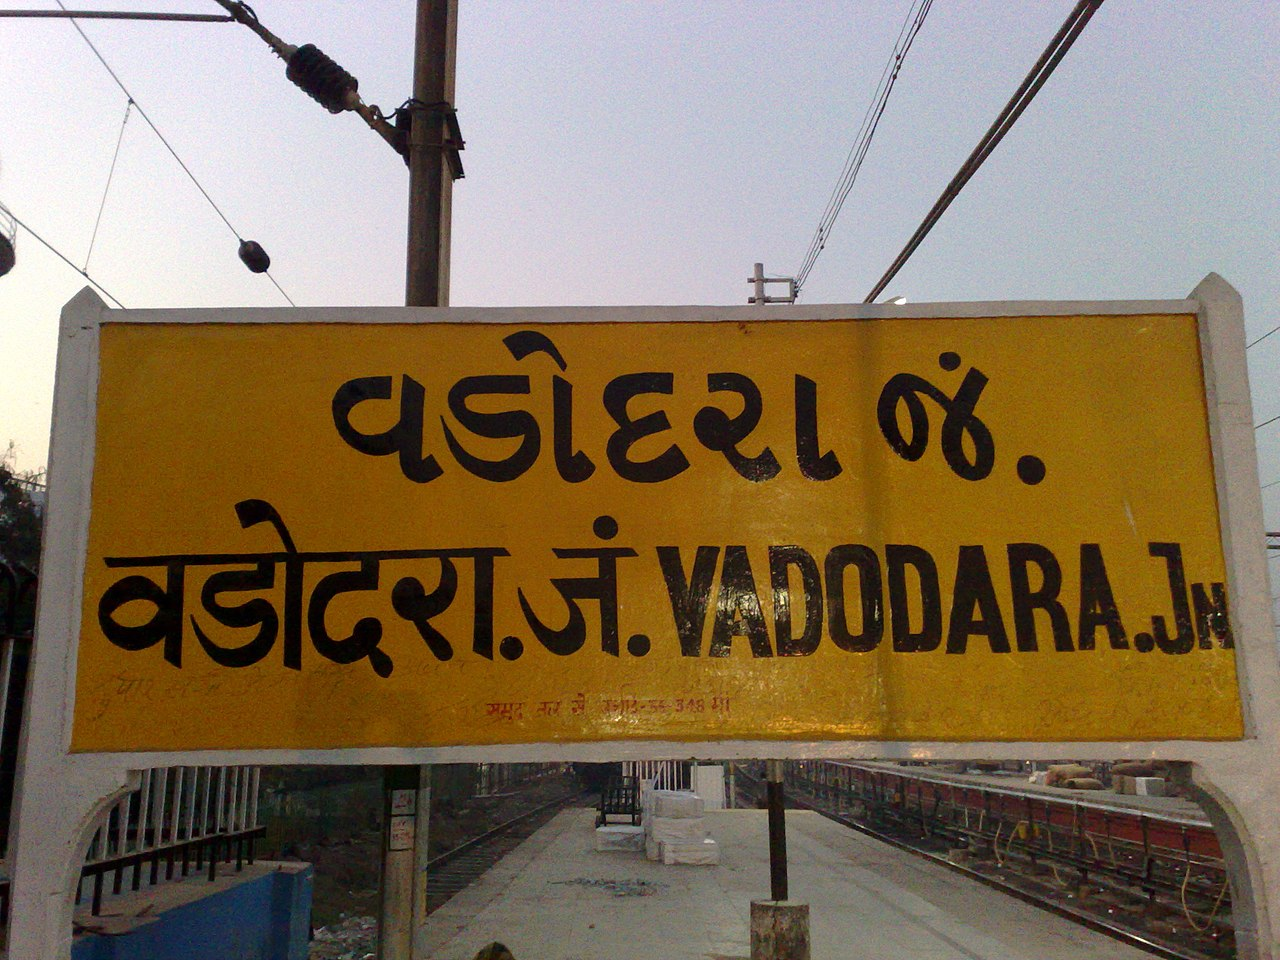 surat rajkot and vadodara are among the cleanest railway surat rajkot and vadodara are among the 10 cleanest railway stations in